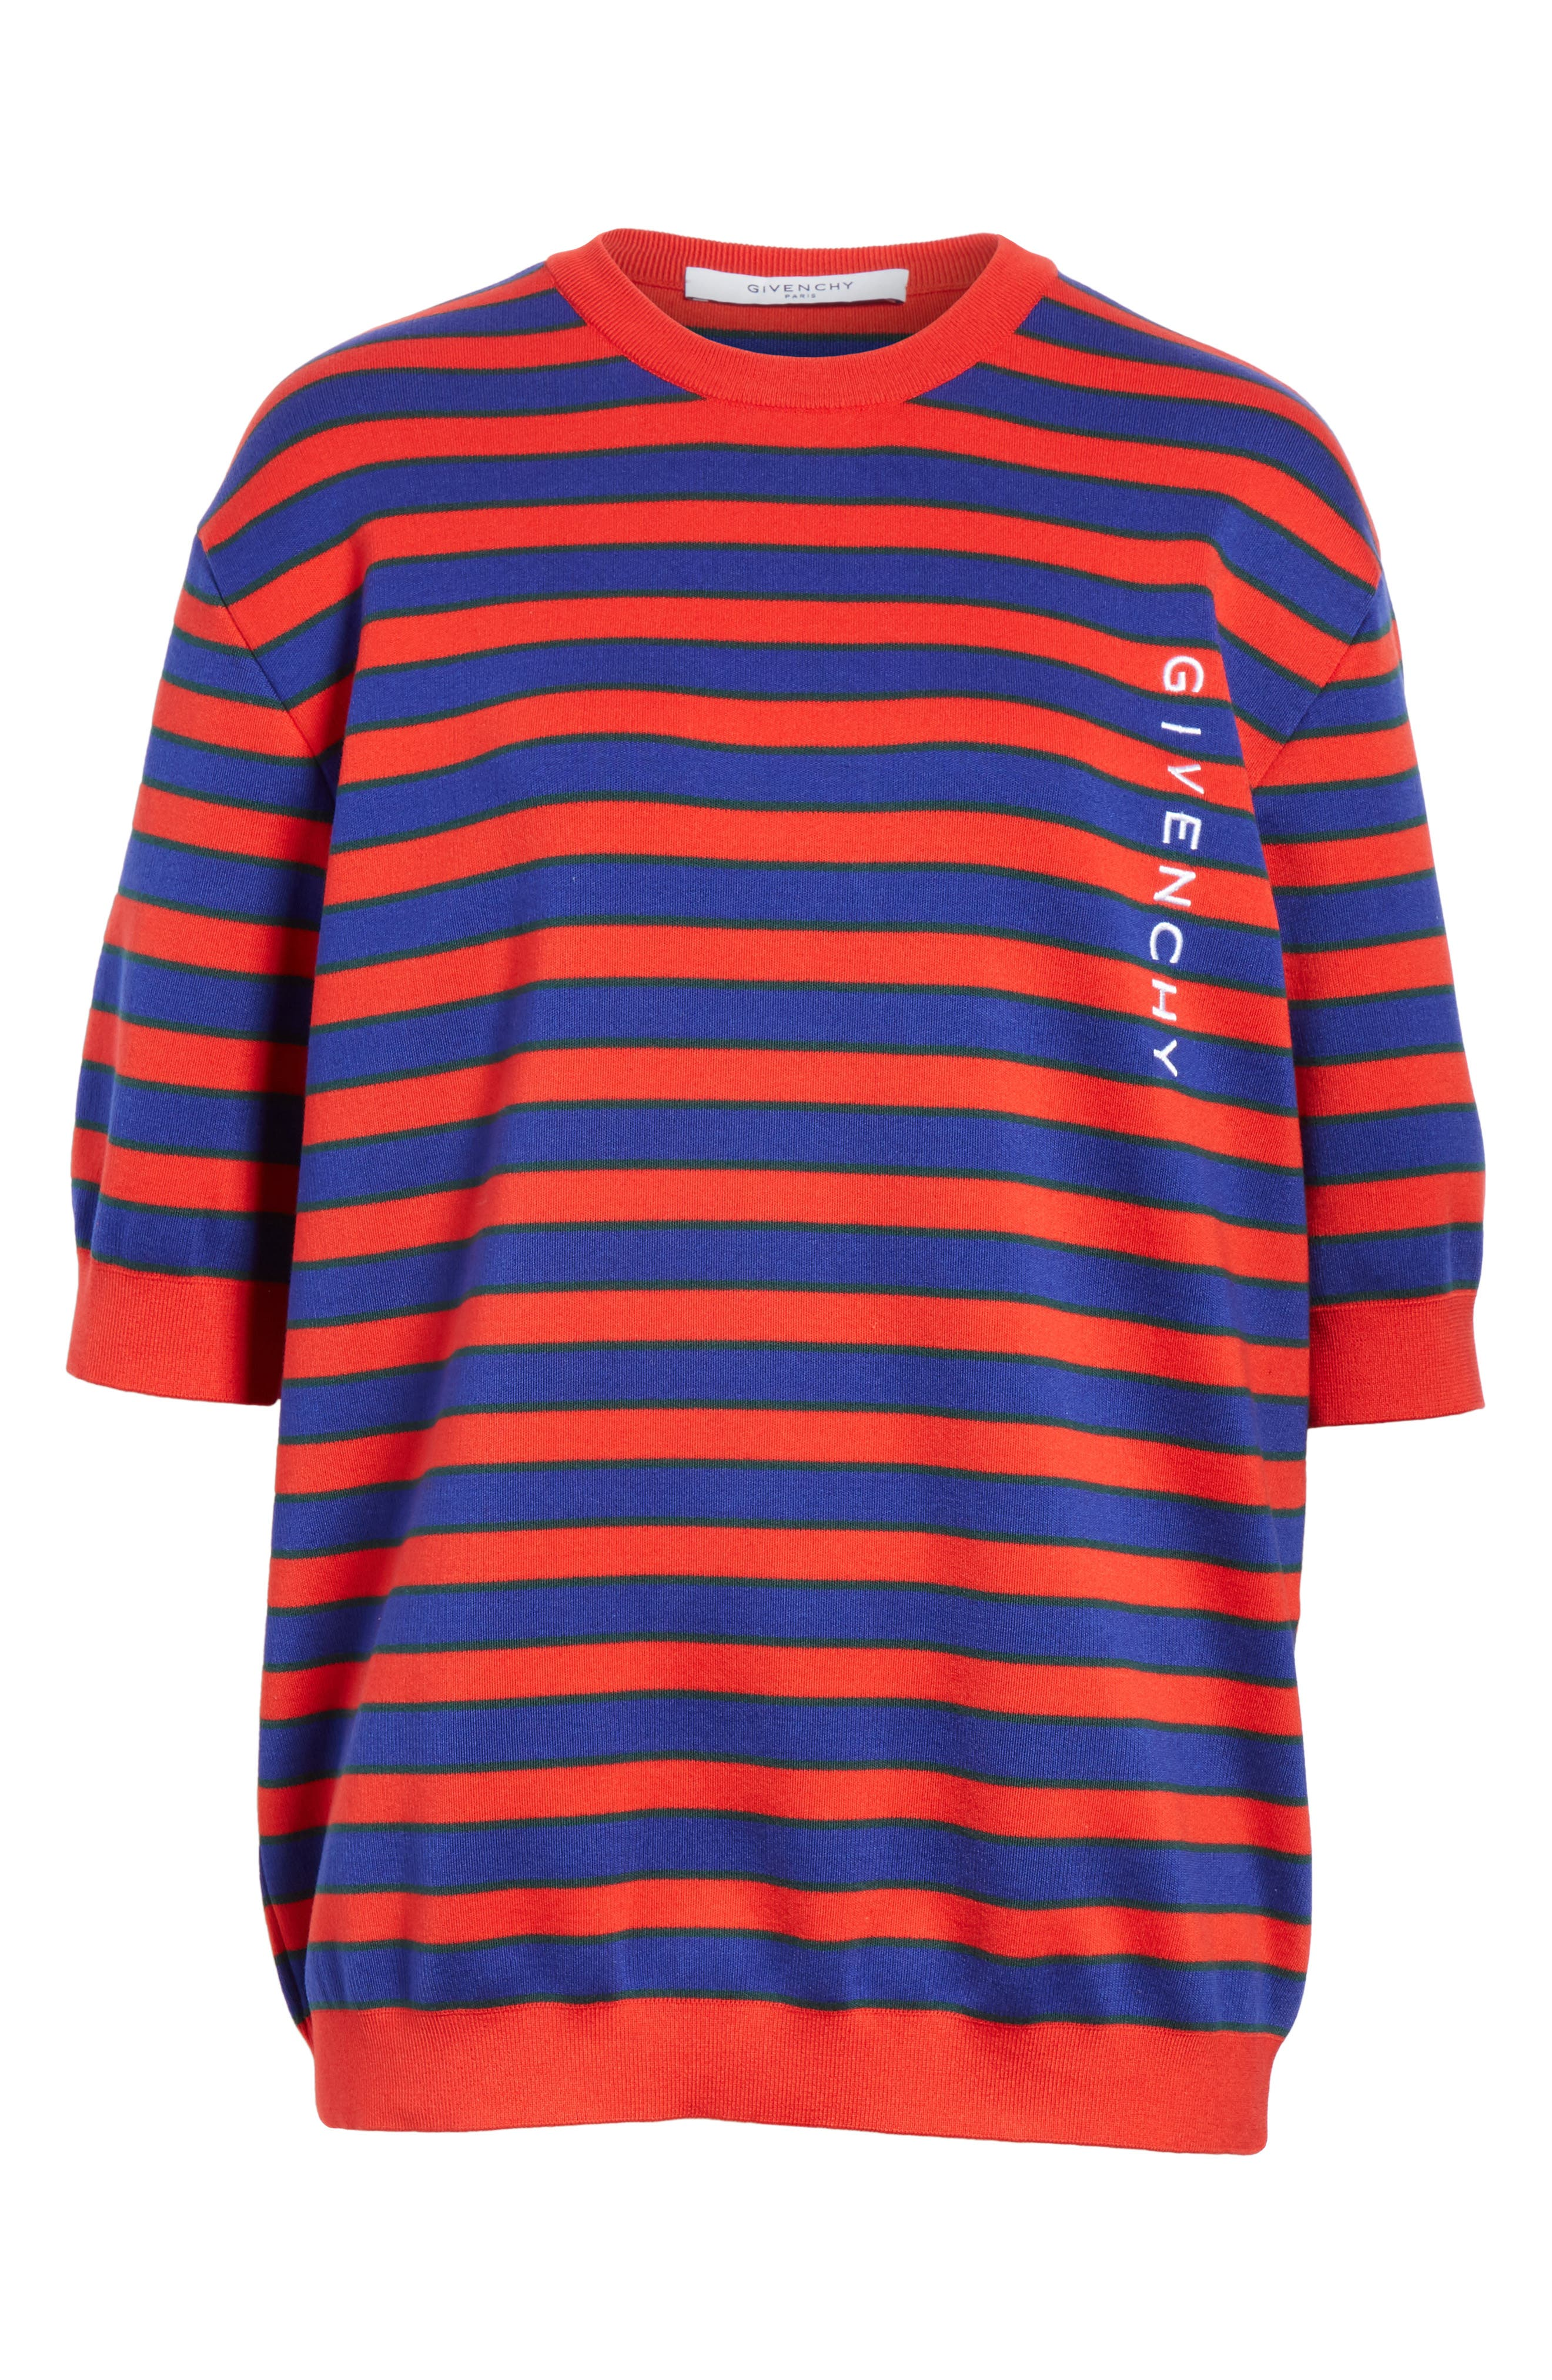 Short Sleeve Stripe Sweater,                             Alternate thumbnail 6, color,                             Red/ Blue